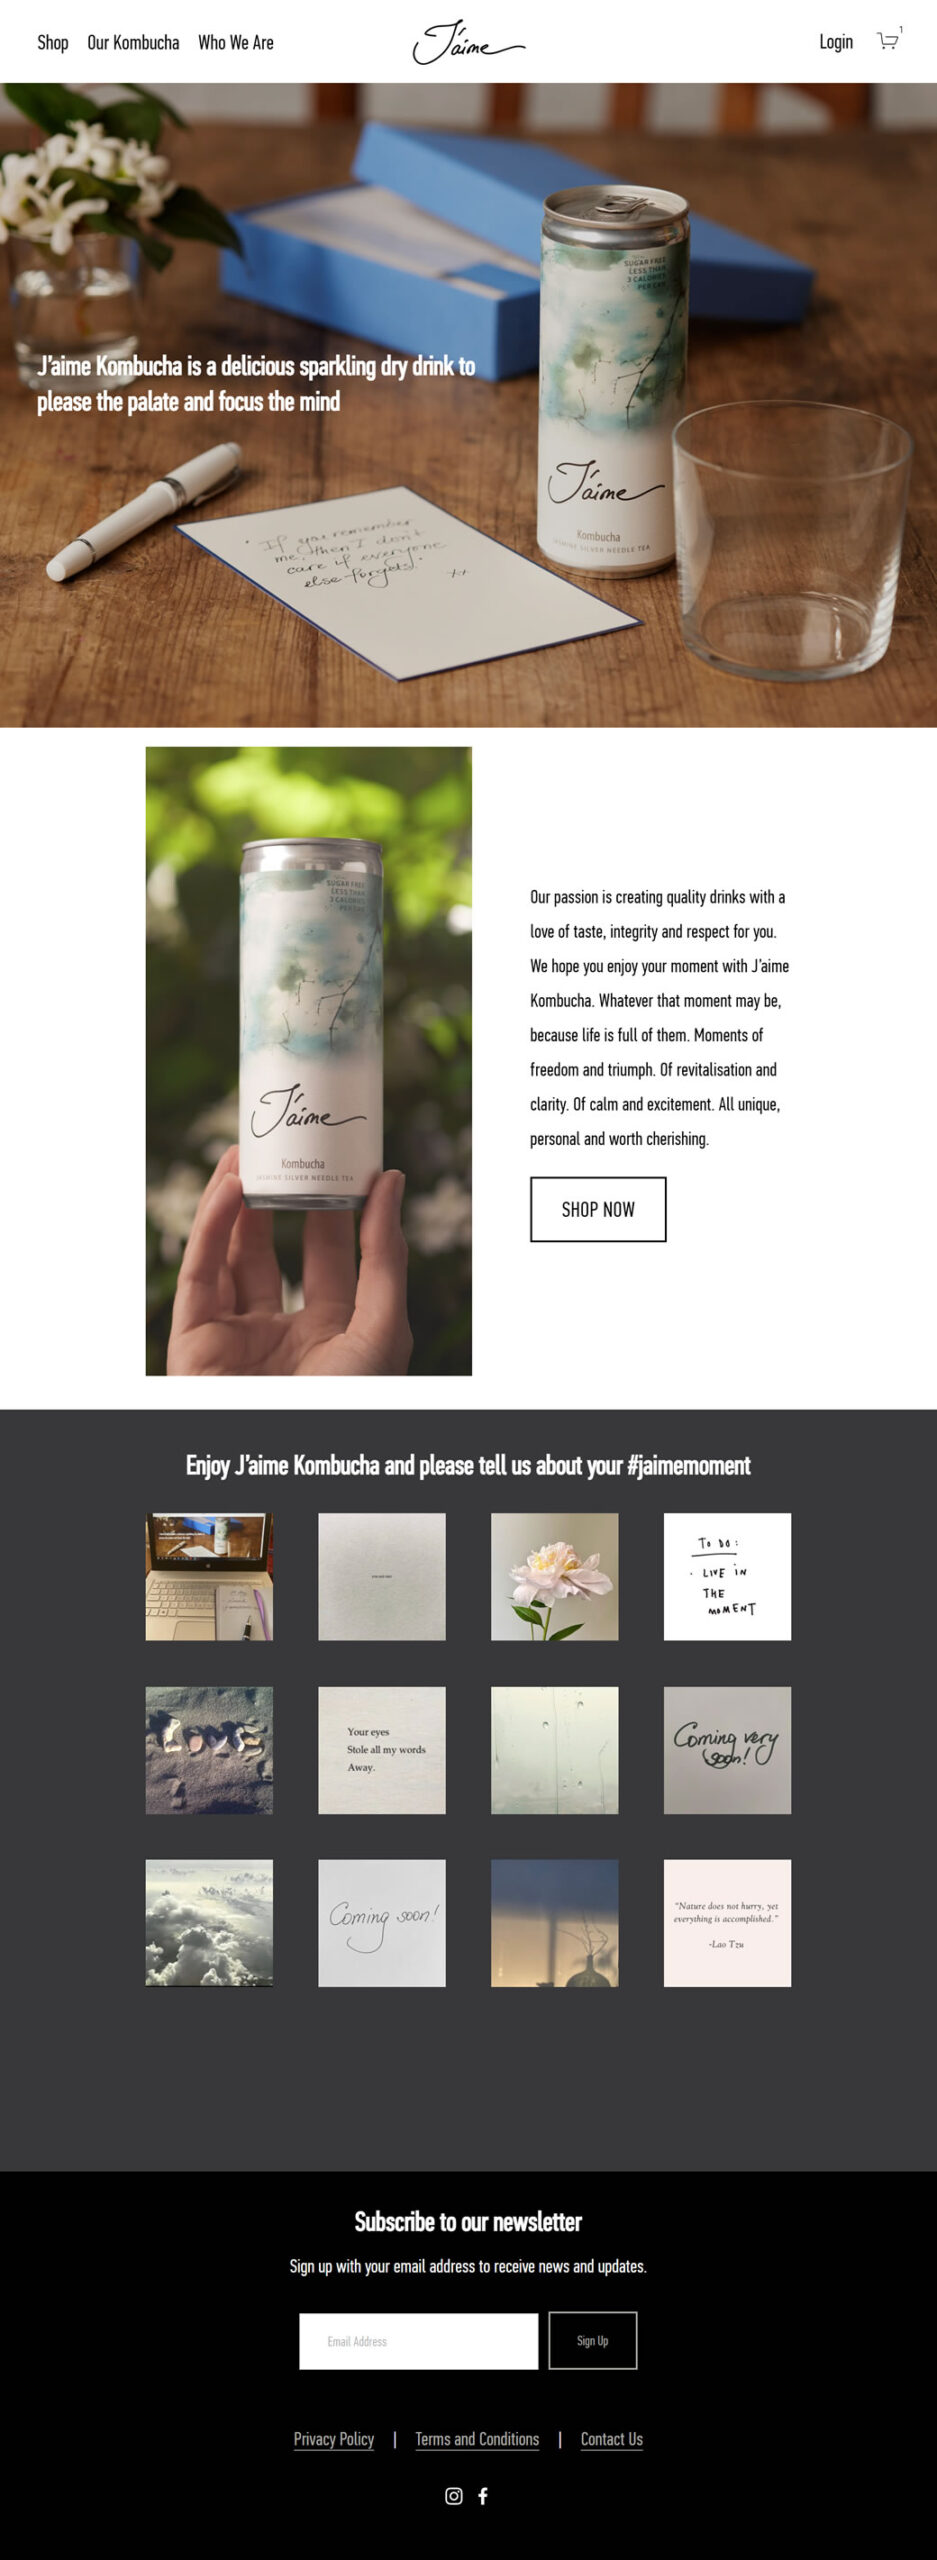 J'aime Drinks built using Squarespace, web design by Convoy Media, Ecommerce